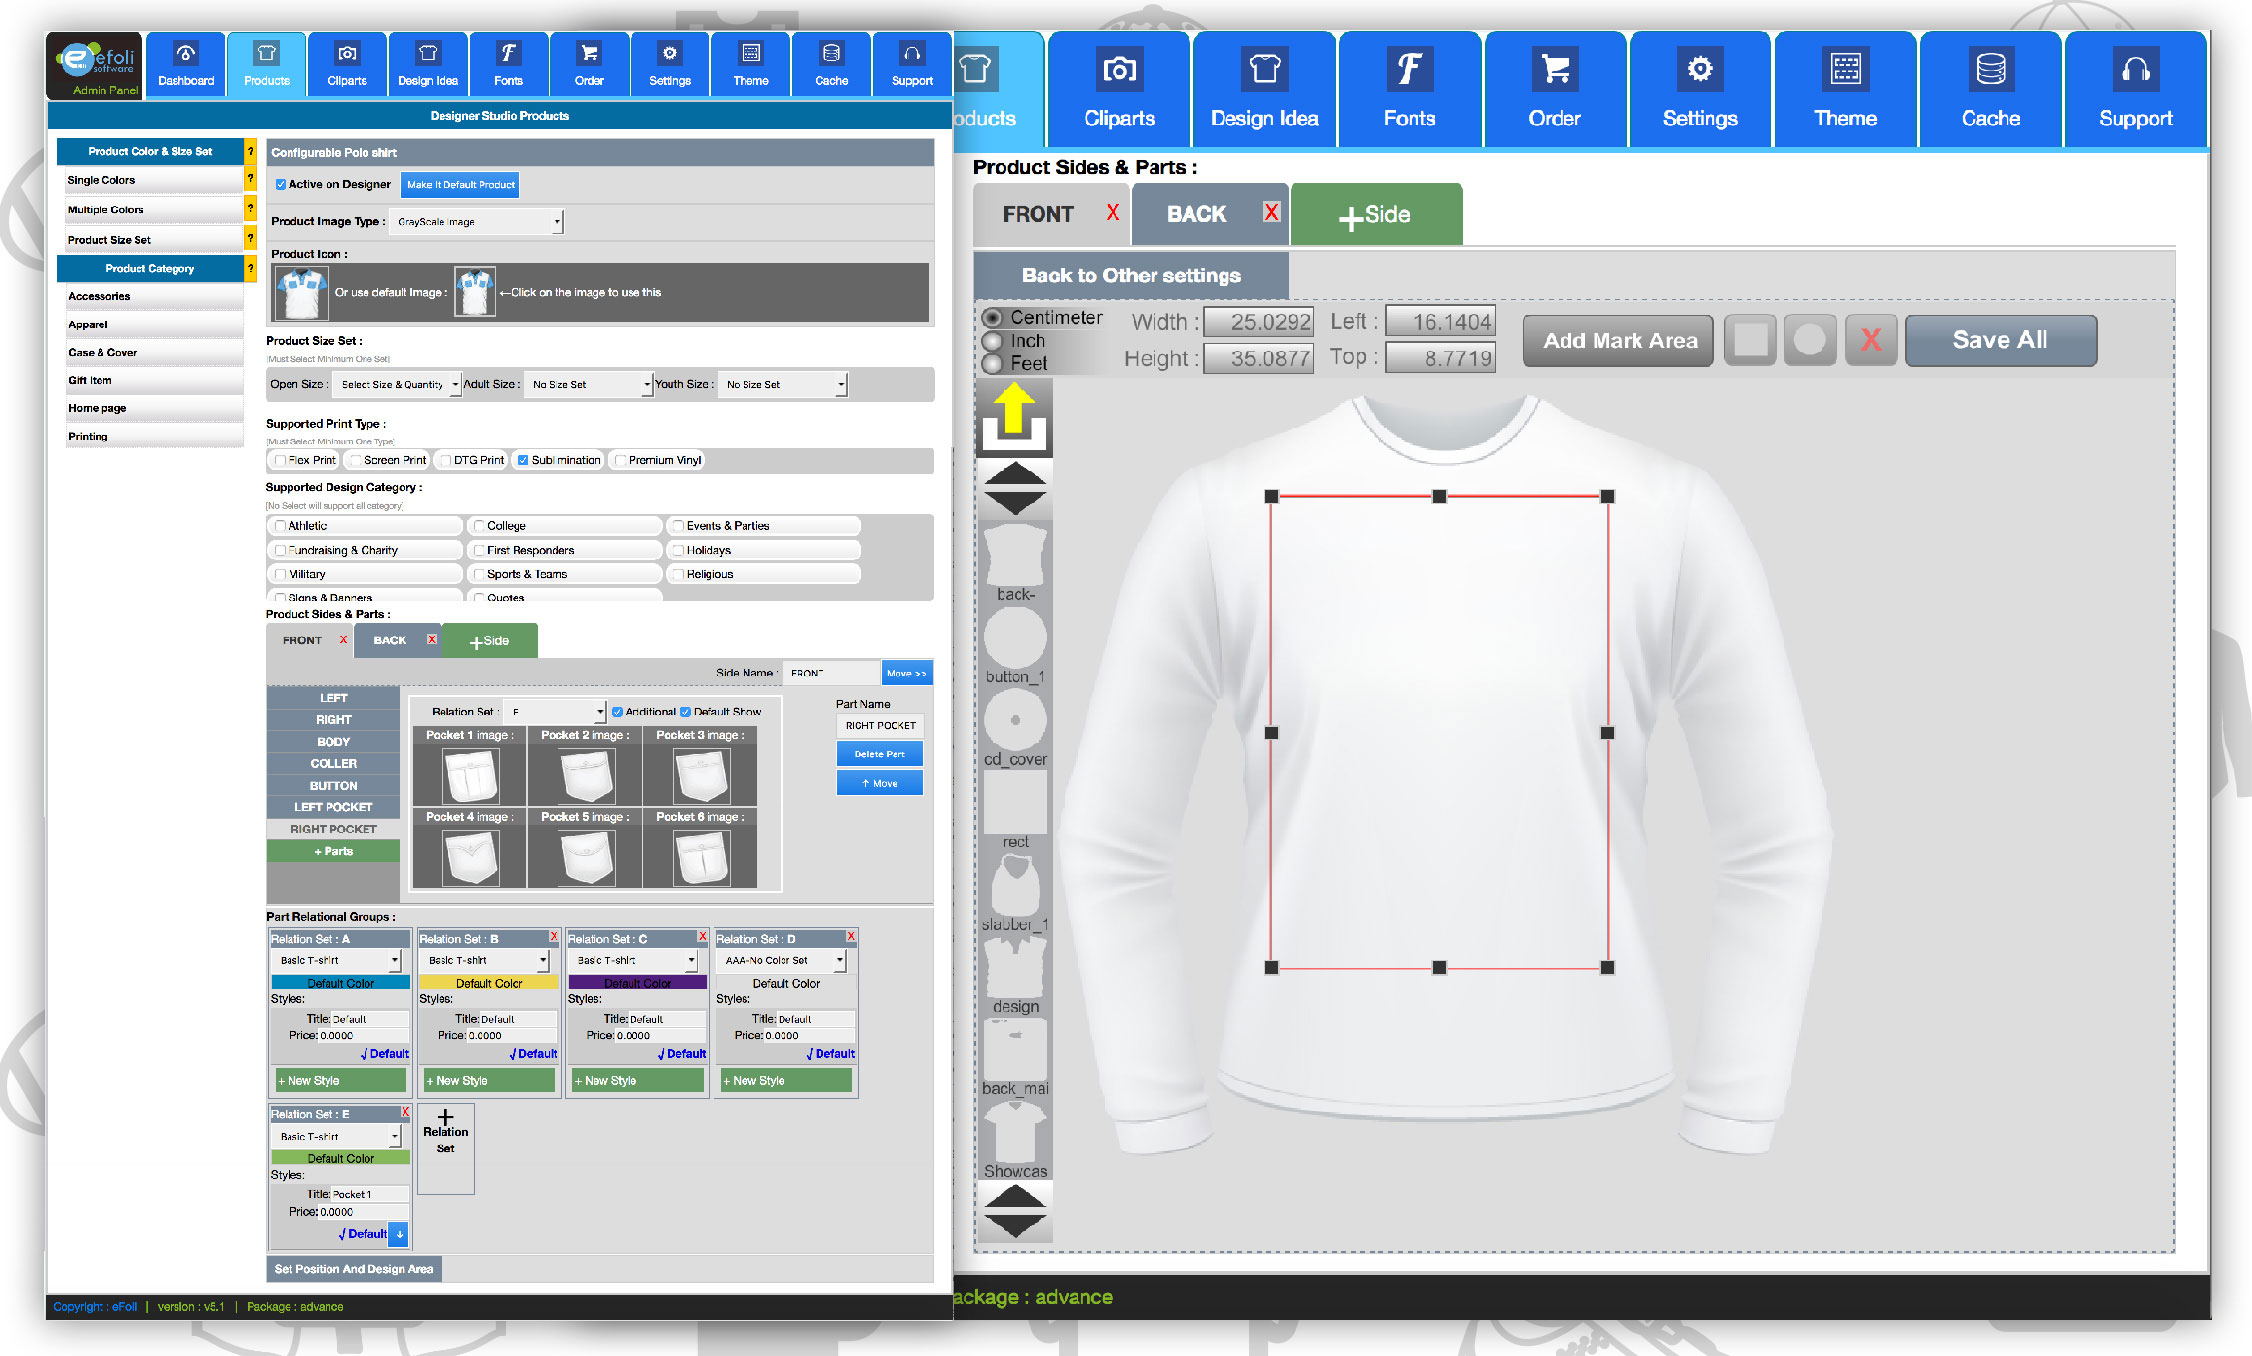 T Shirt Design Tool For Ecommerce Product Design Software